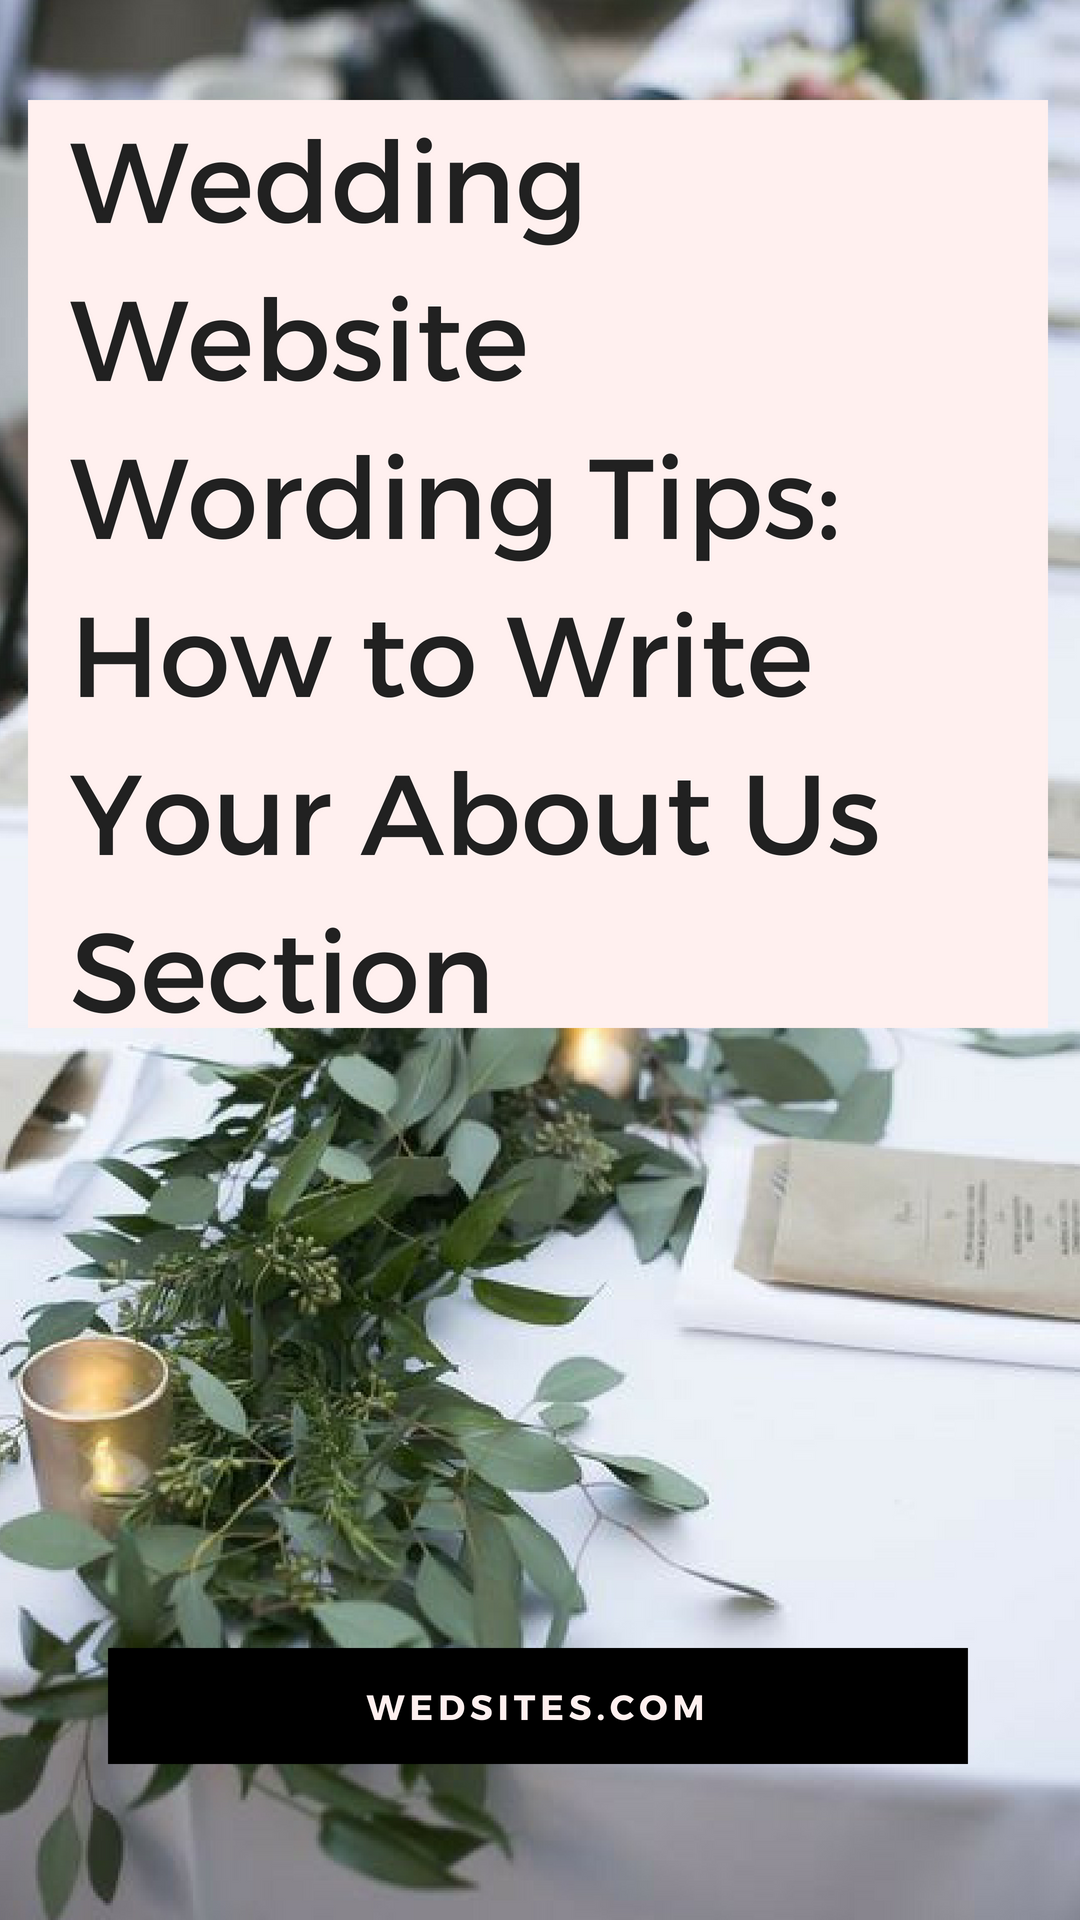 Wedding Website Wording Tips: How to Write Your About Us